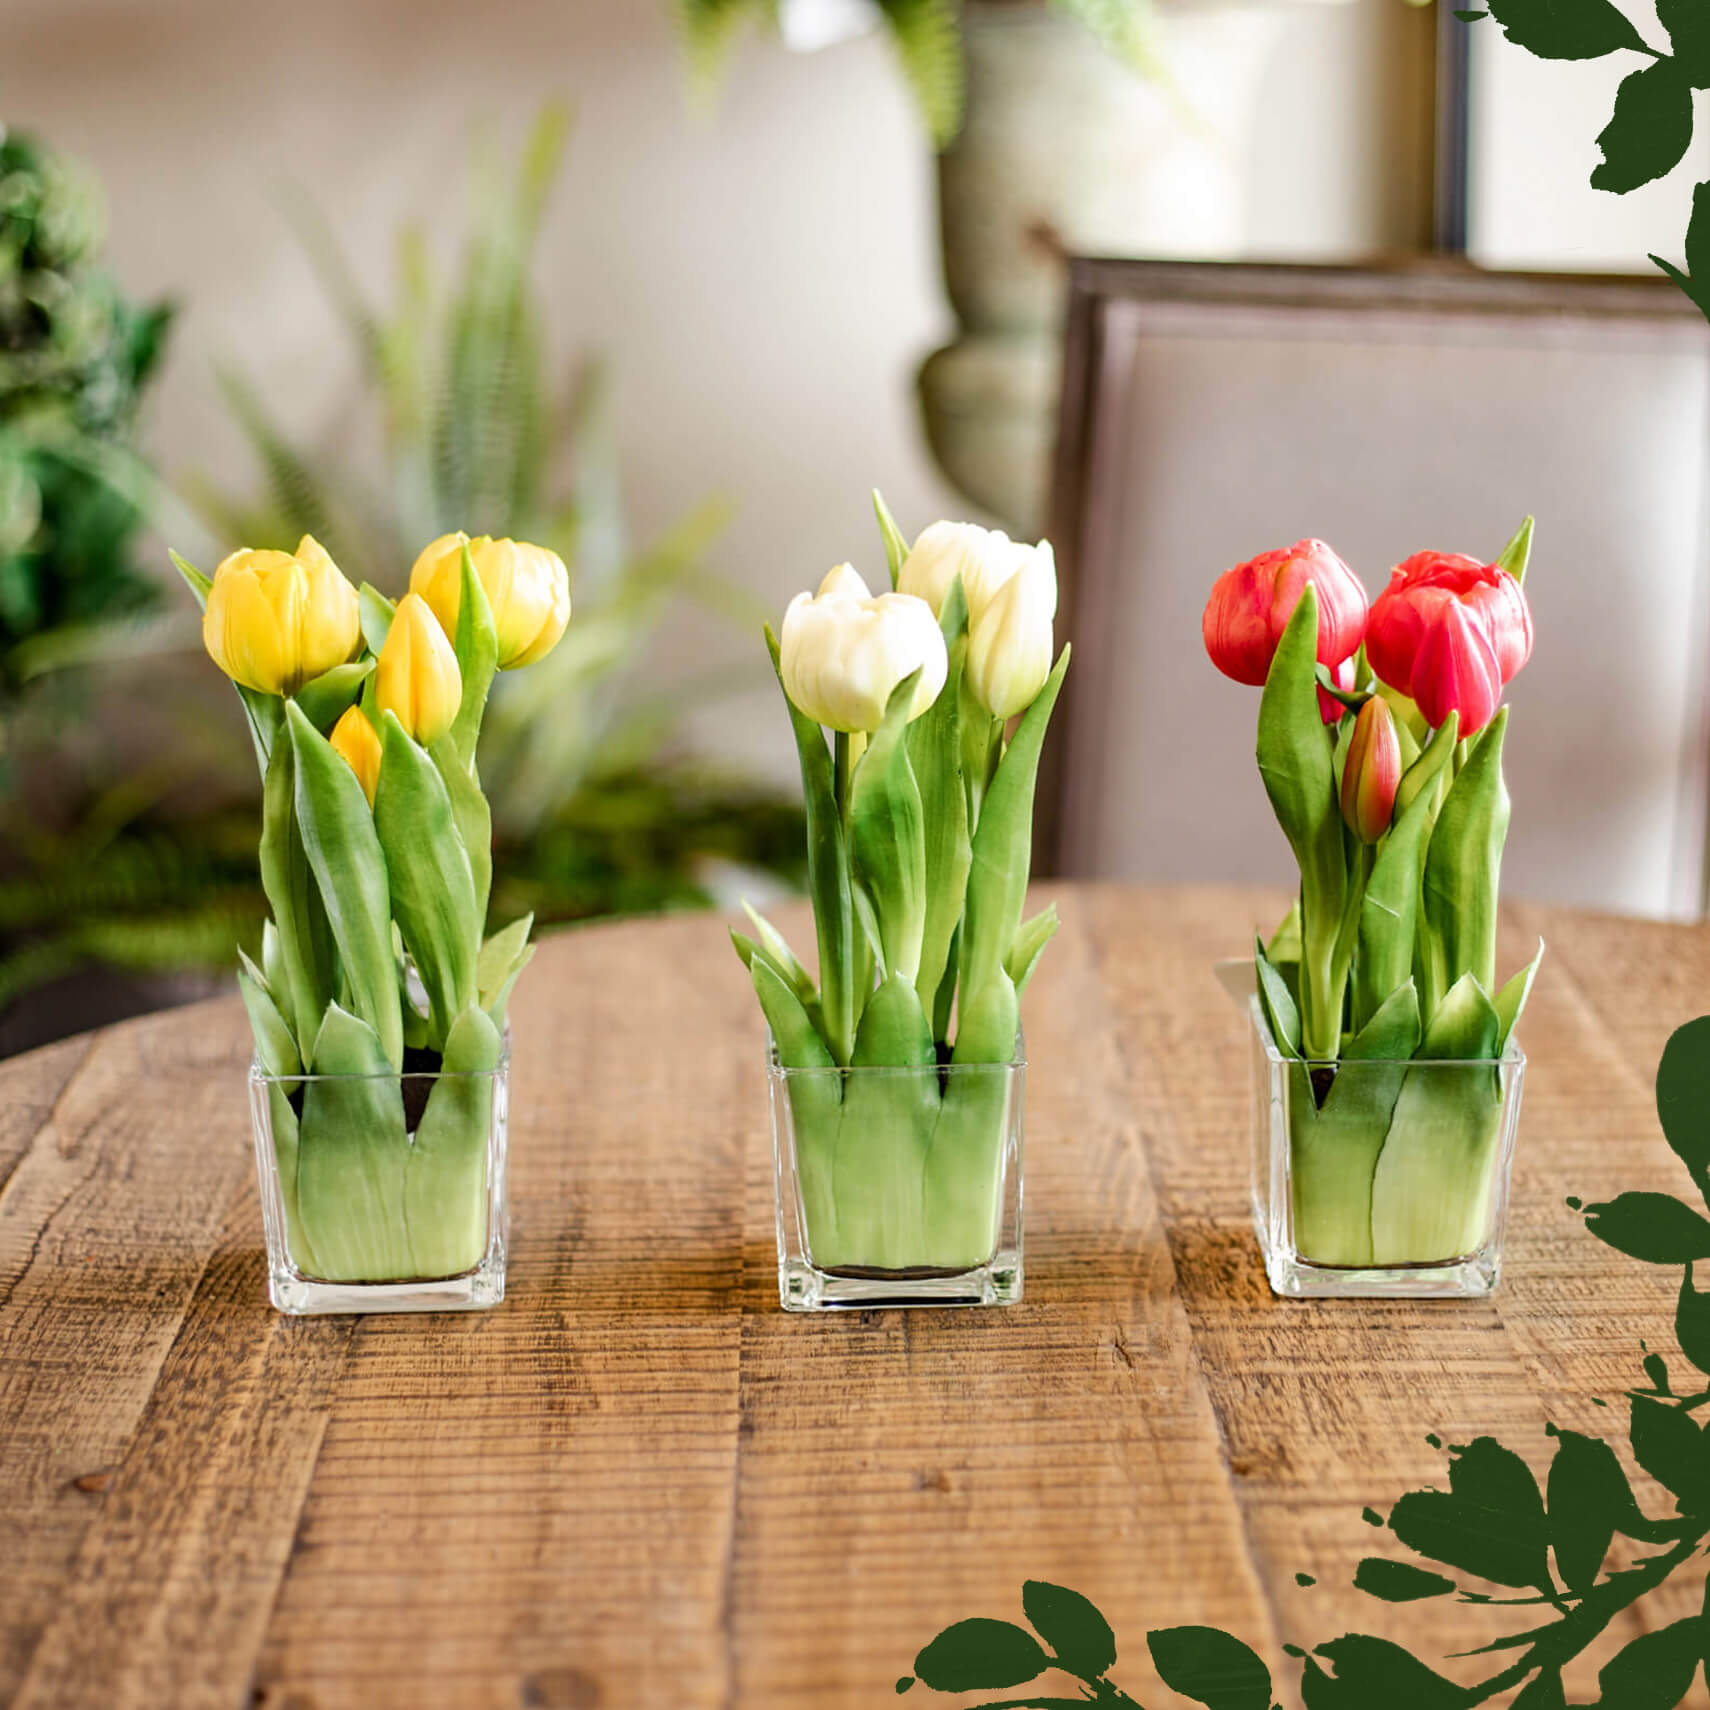 Realistic faux Tulips in glass containers to decorate your  home for spring or Easter.